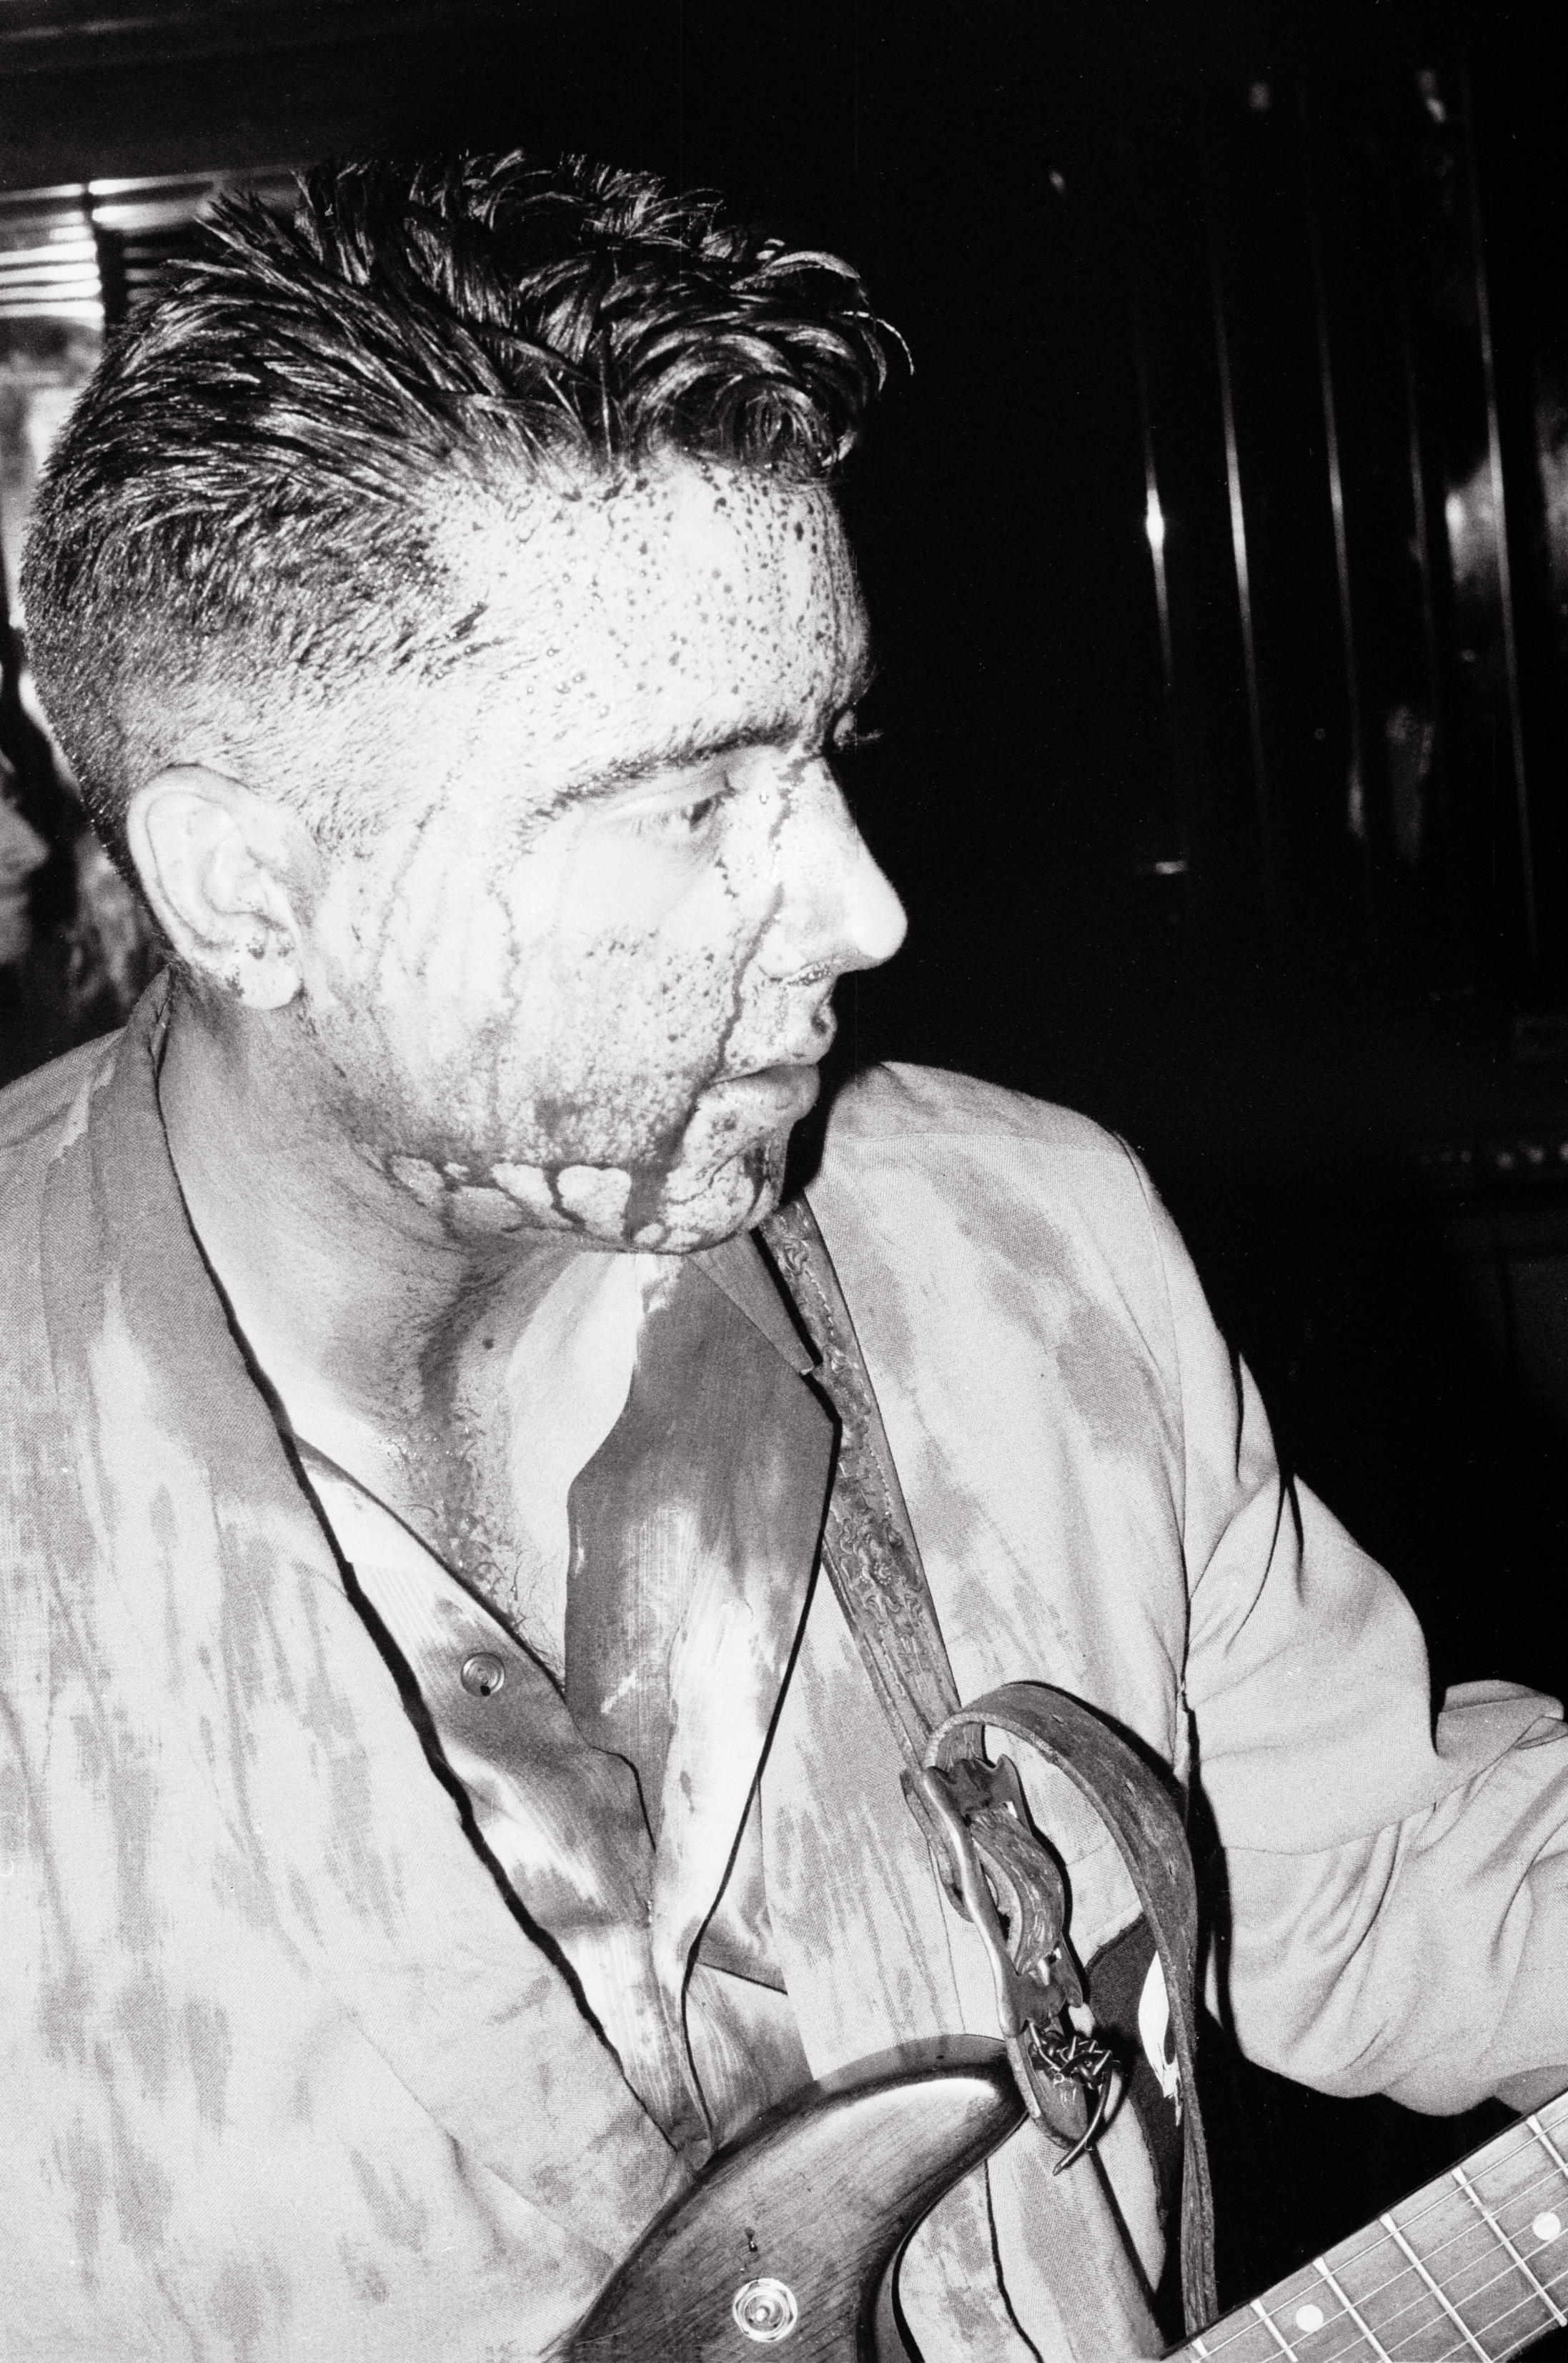 Covered in chicken blood, lead singer P.Paul Fenech of the psychobilly band The Meteors at the Batcave in Soho 1982.